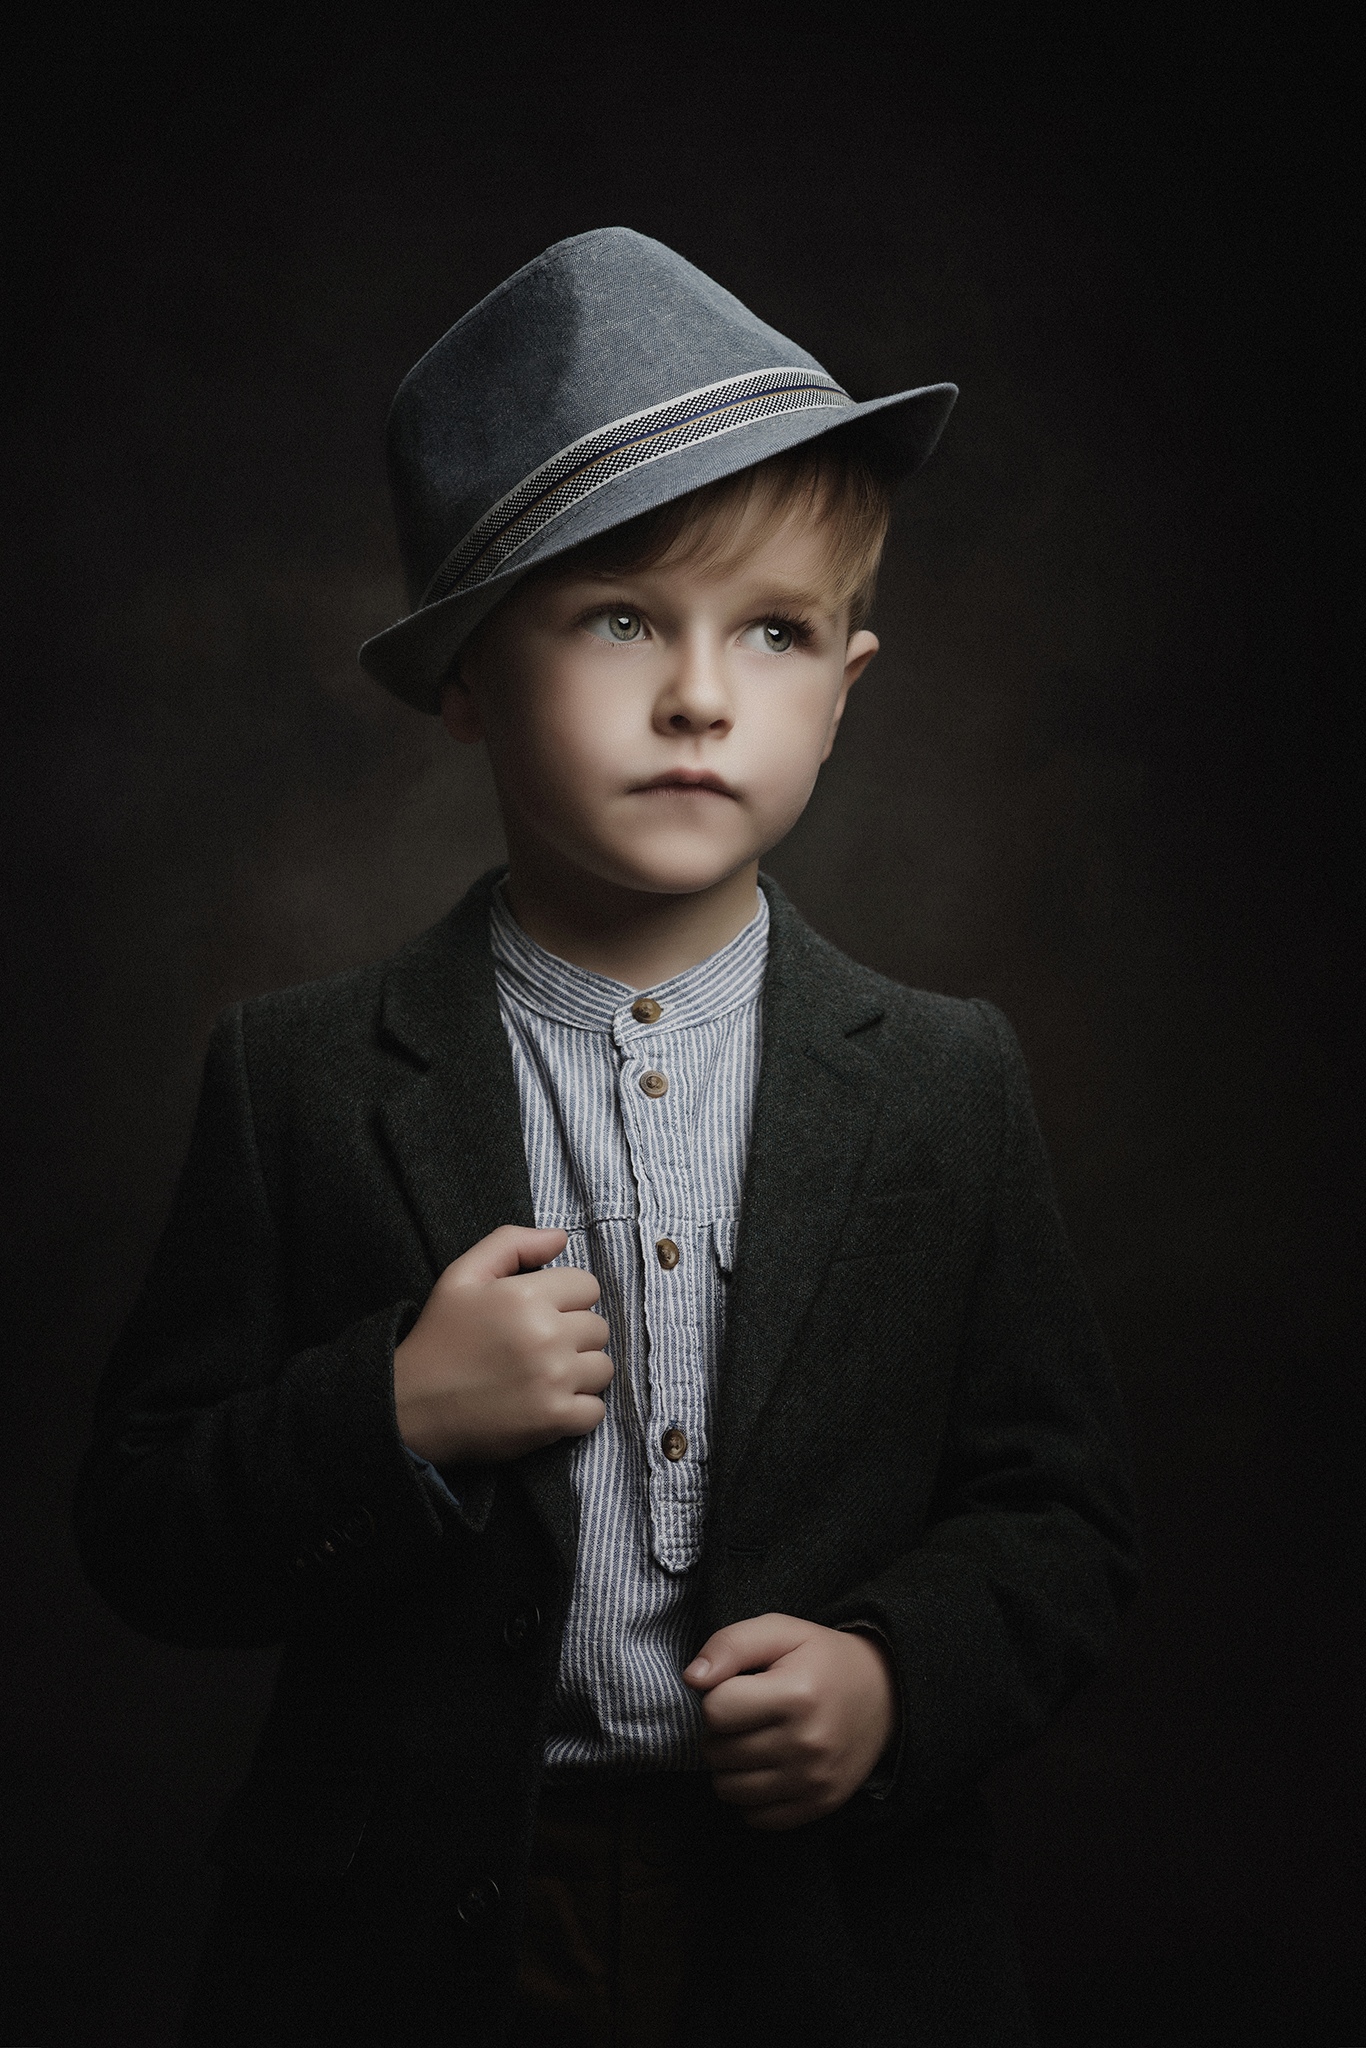 child model portfolio photoshoot by Portrait photographer Preston